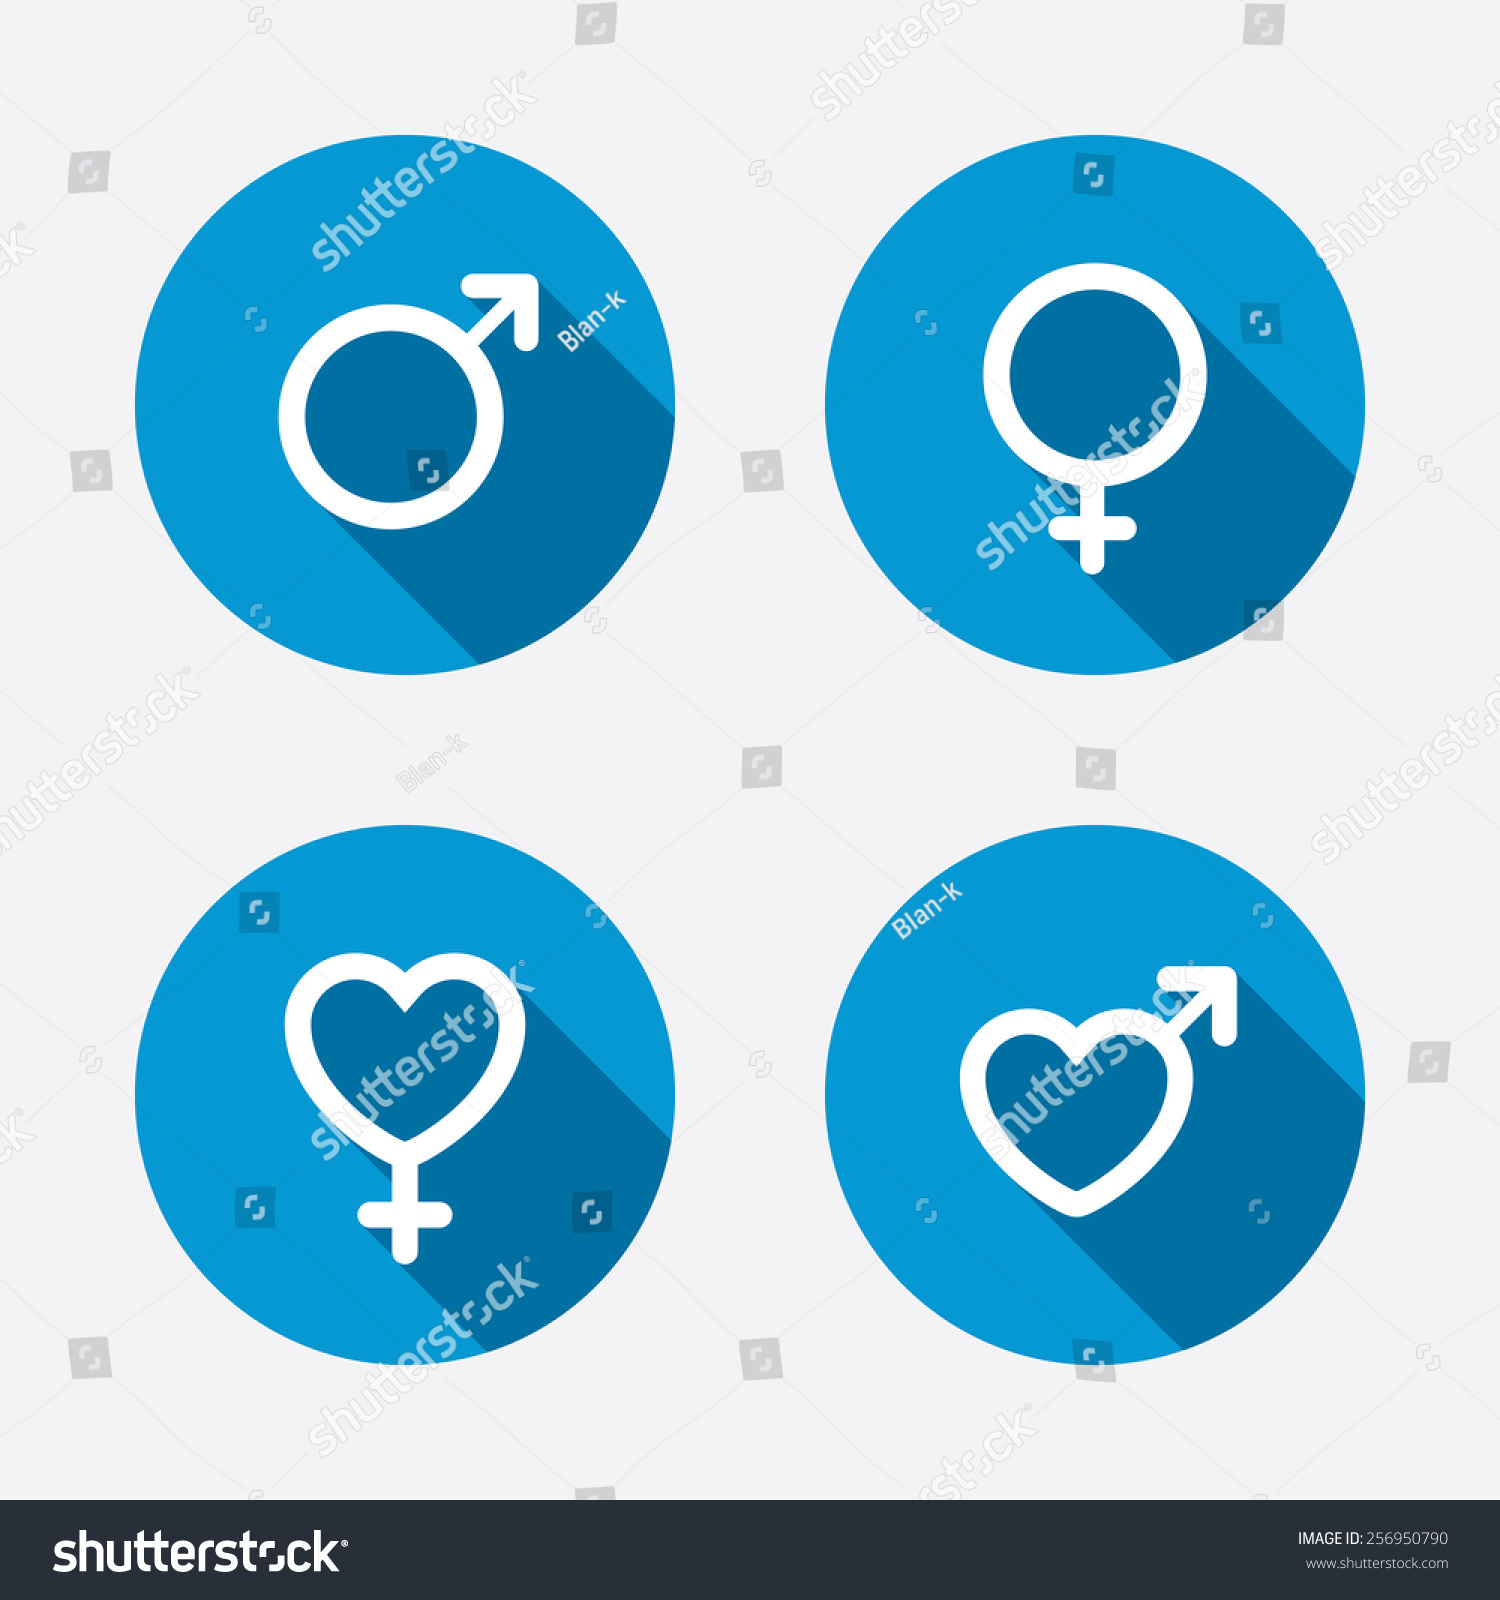 Girls bathroom sign outline - Man And Woman Signs With Hearts Symbols Circle Concept